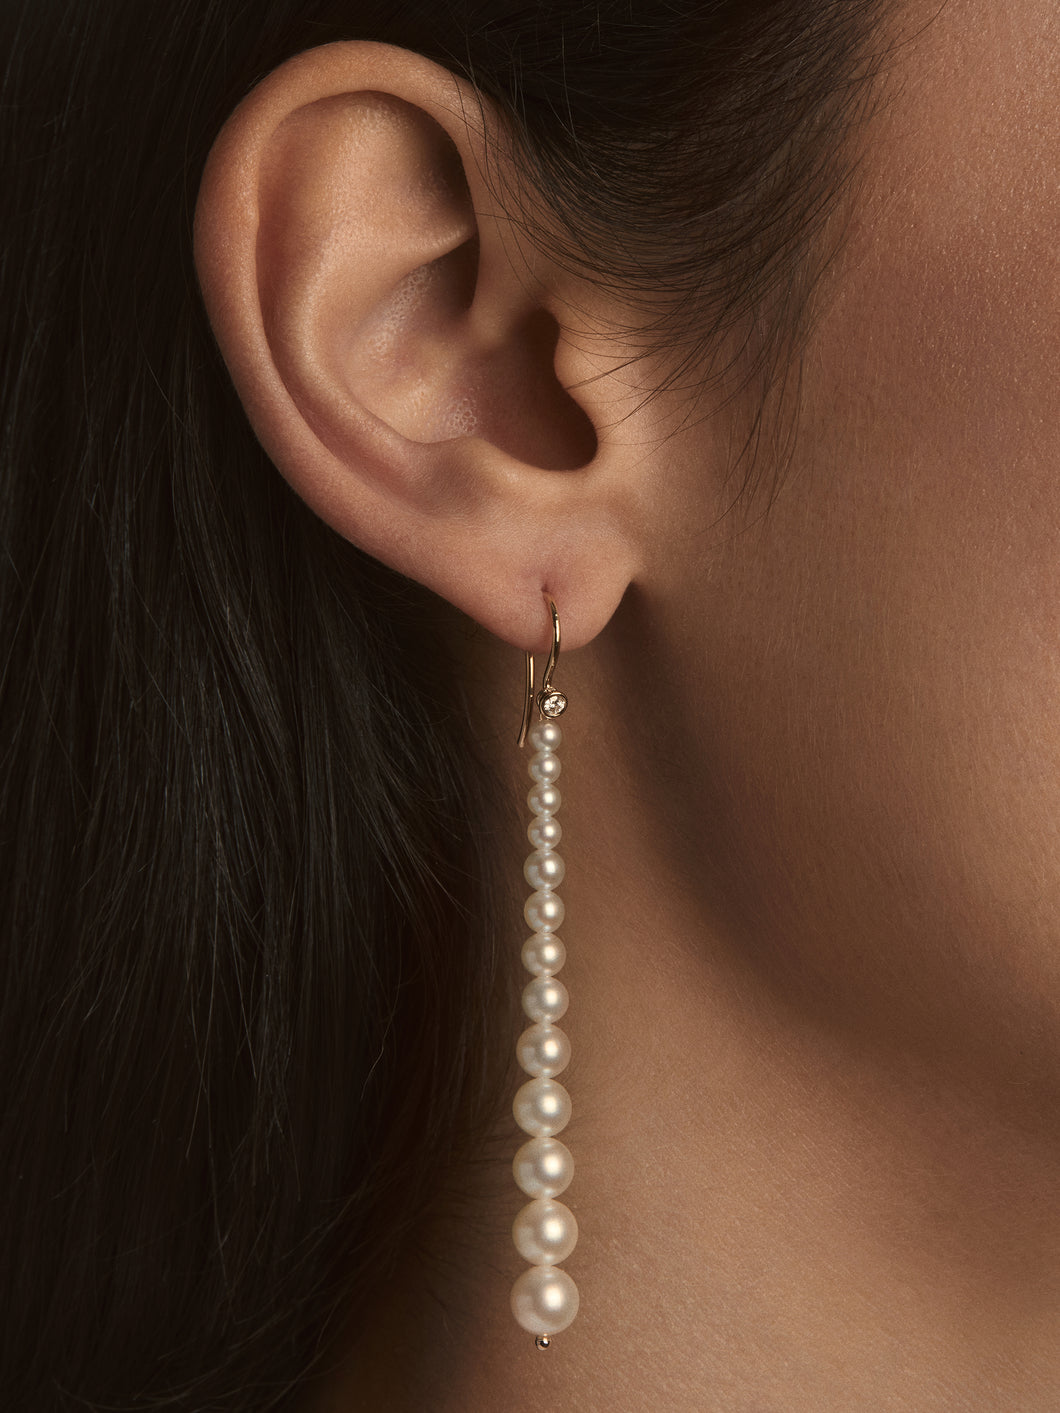 Sea of Beauty Collection. Graduated Pearl with Diamond Earrings SBE279S